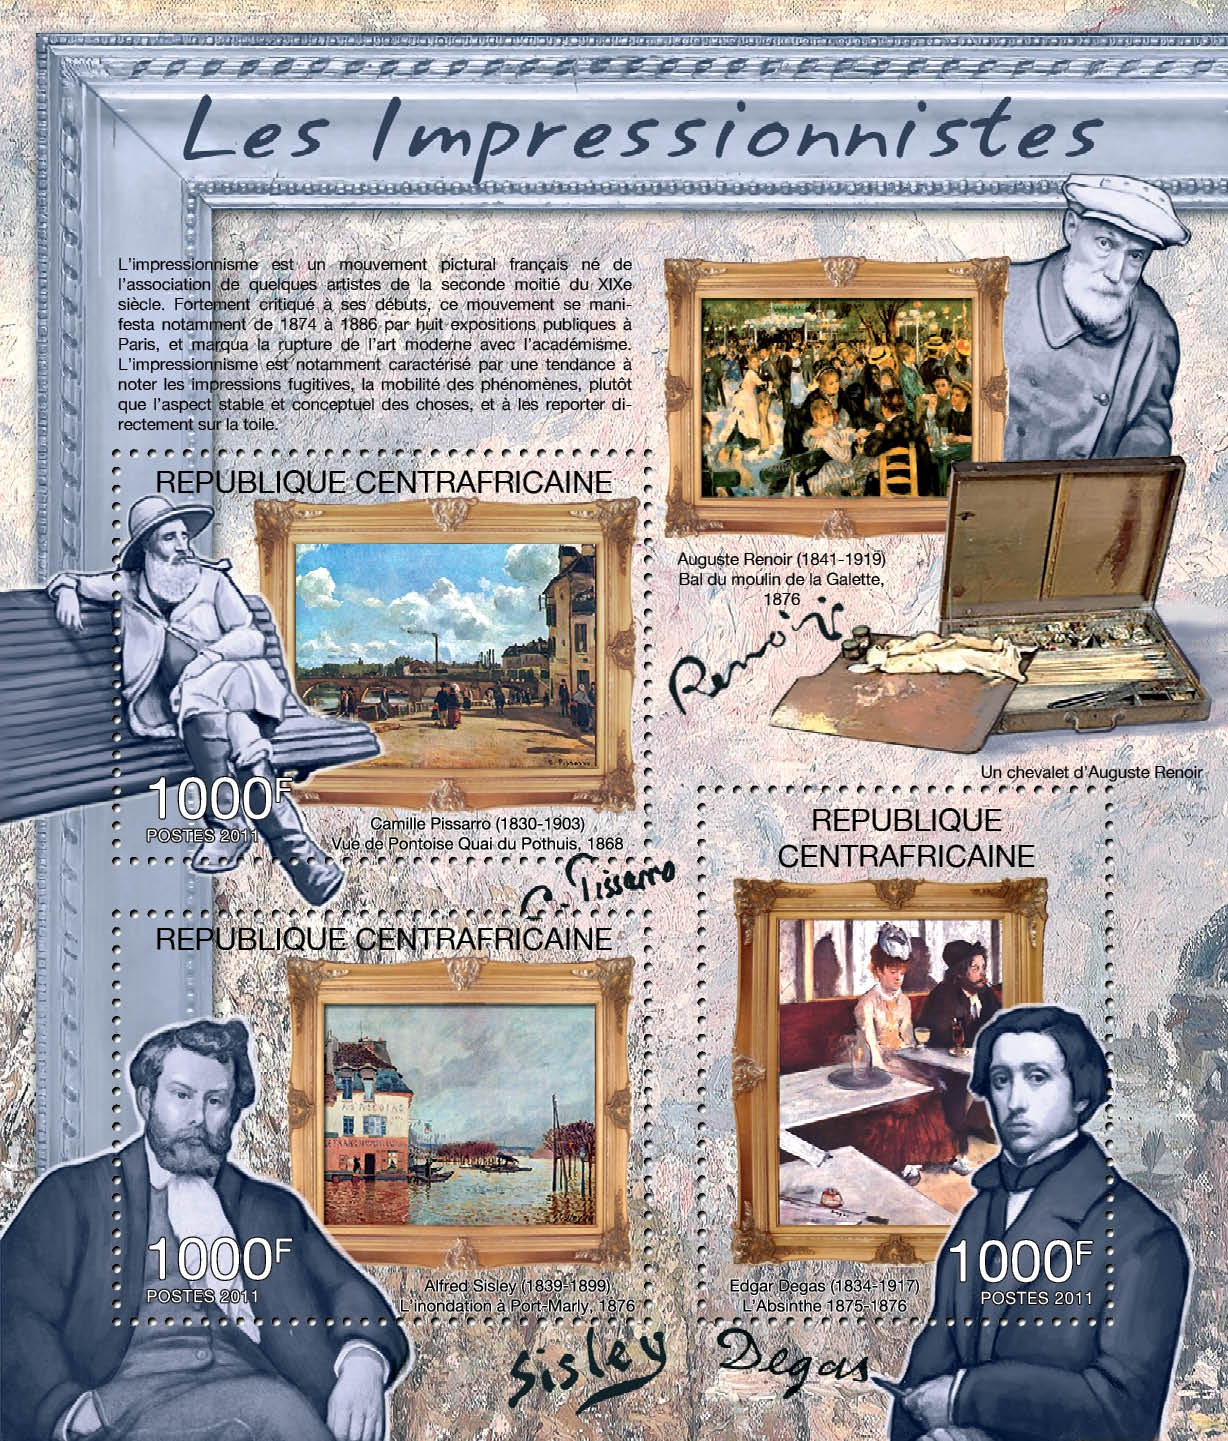 Impressionists, (C.Pissaro, A.Sisley, E.Degas). - Issue of Central African republic postage stamps